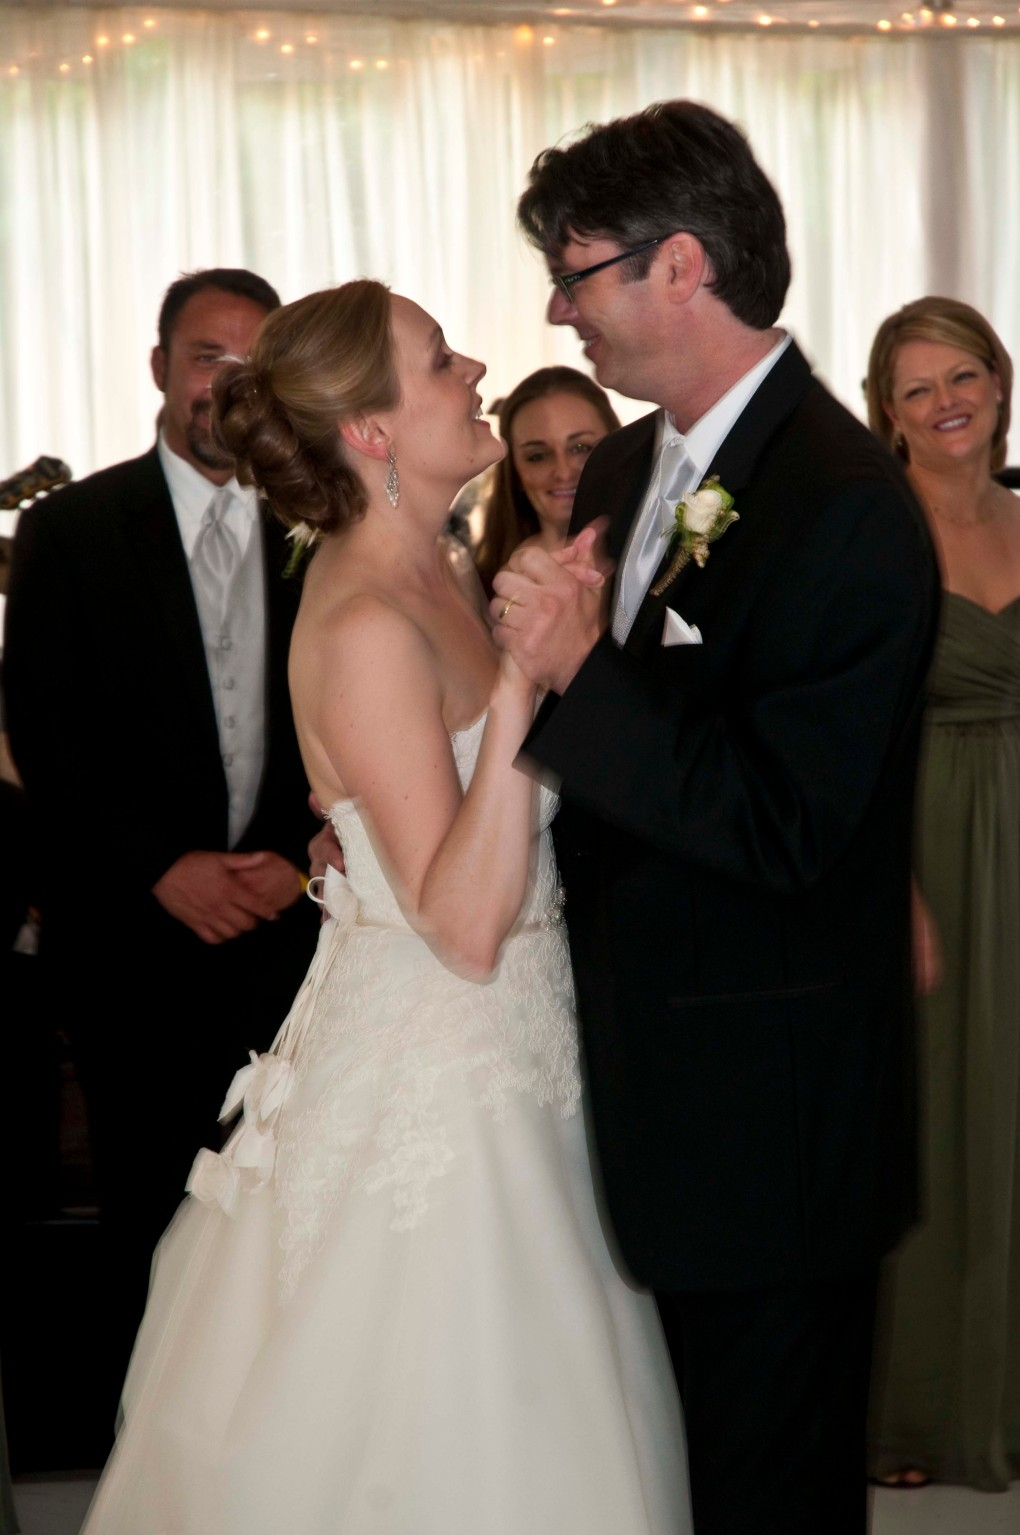 First dance for the married couple.